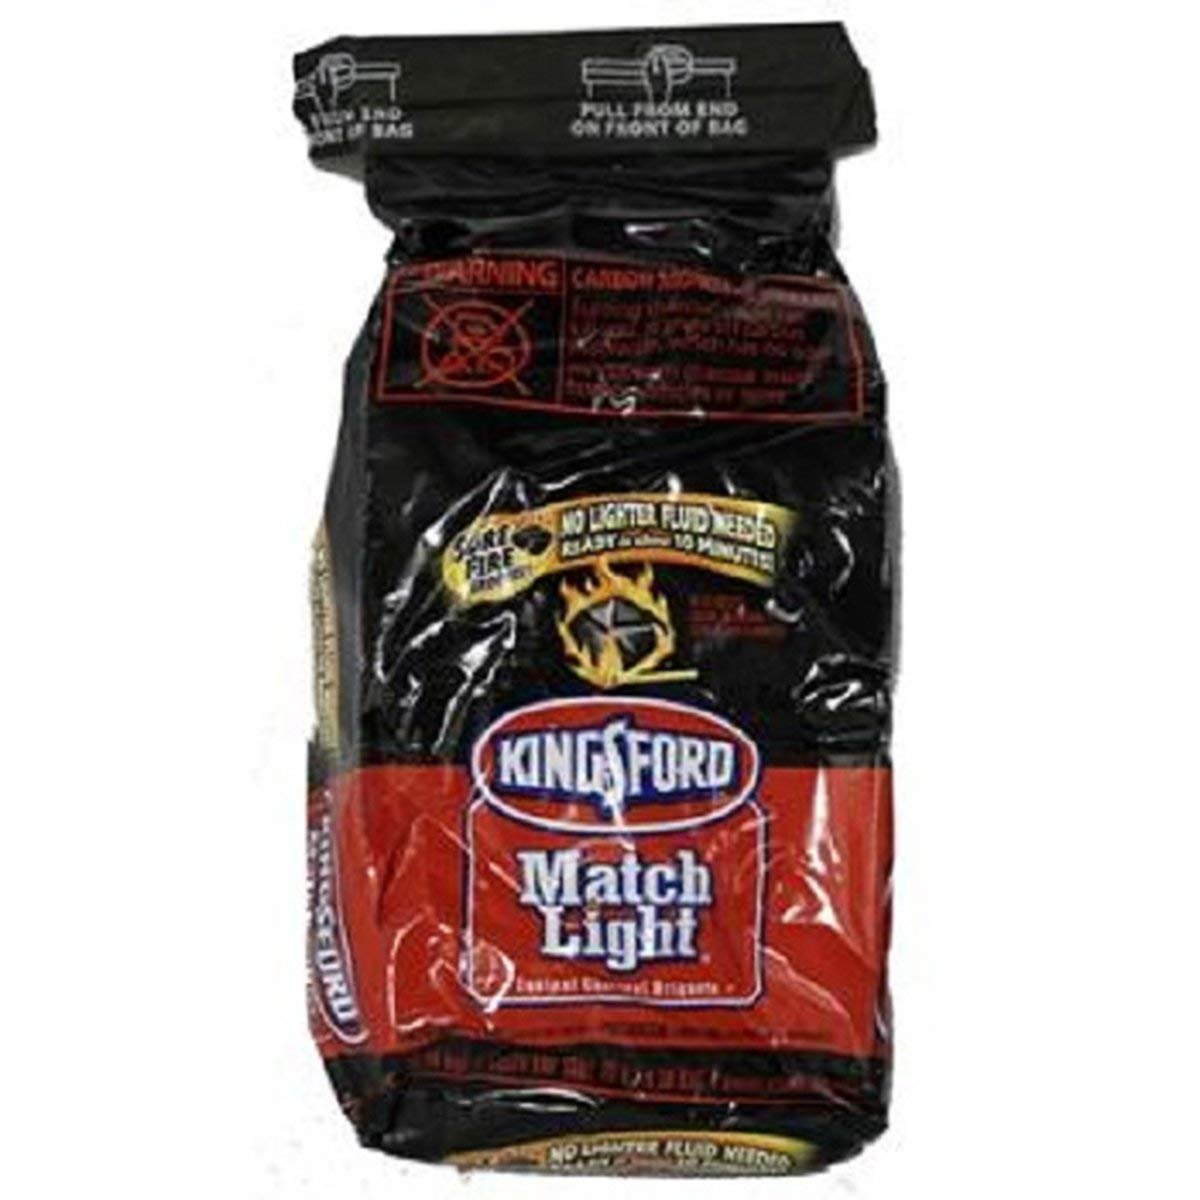 Product Of Kingsford, Matchlight, Count 6 (3.1Lb) - Charcoal / Starter & Fluid / Grab Varieties & Flavors